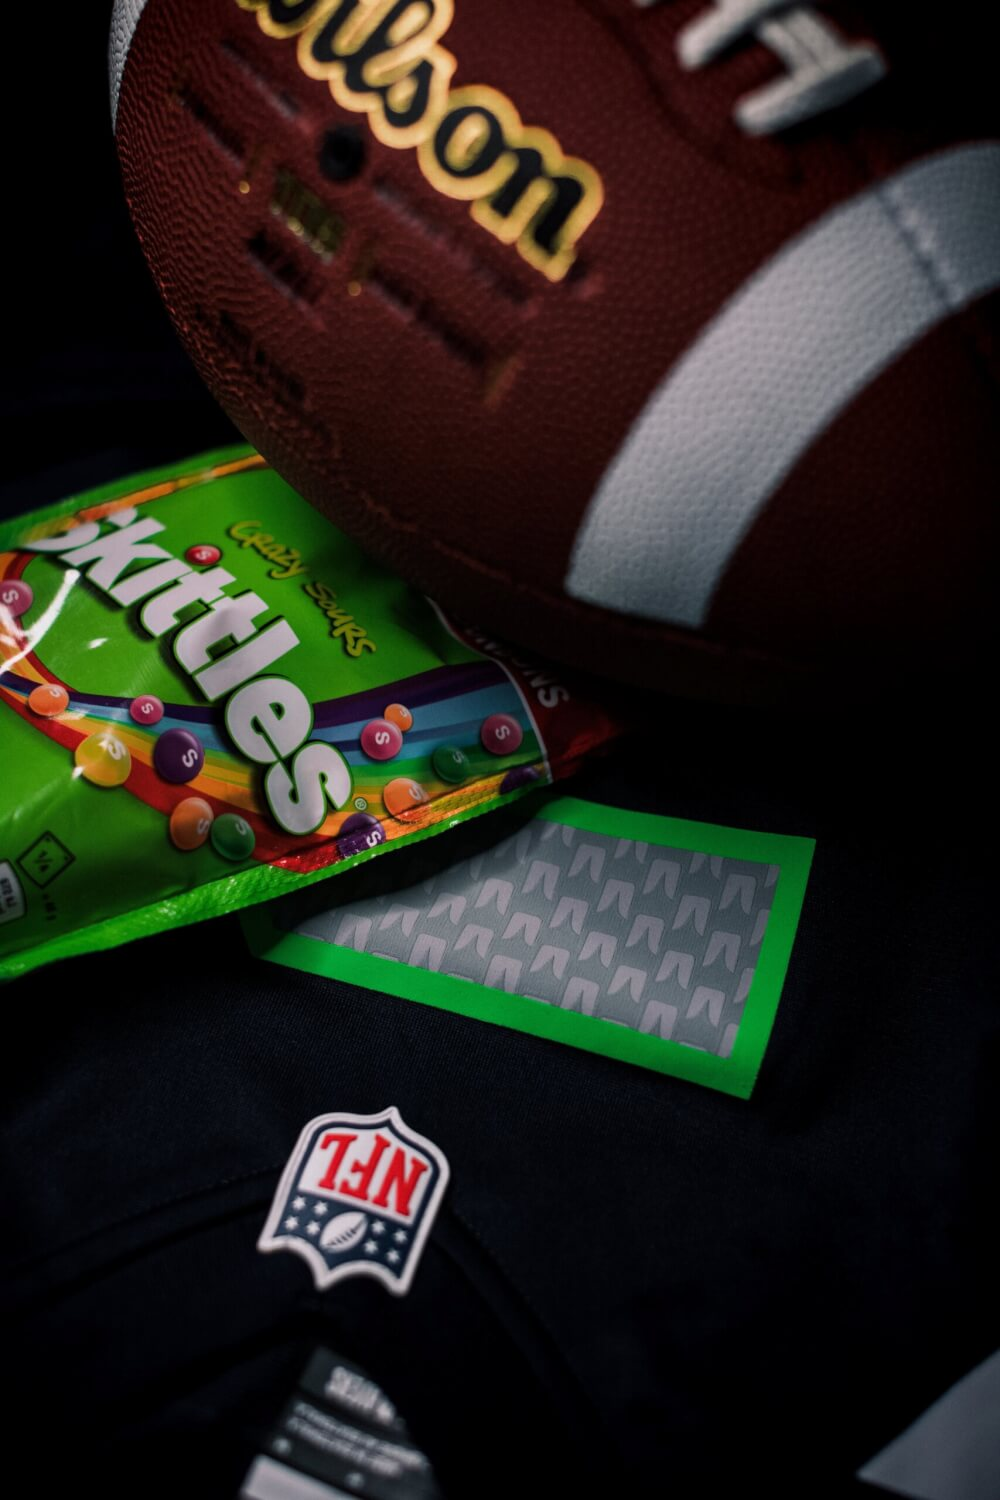 A Seattle Seahawks jersey and football. A pack of skittles is on top, which happens to be what fans would often see Marshawn Lynch eat on the sidelines.